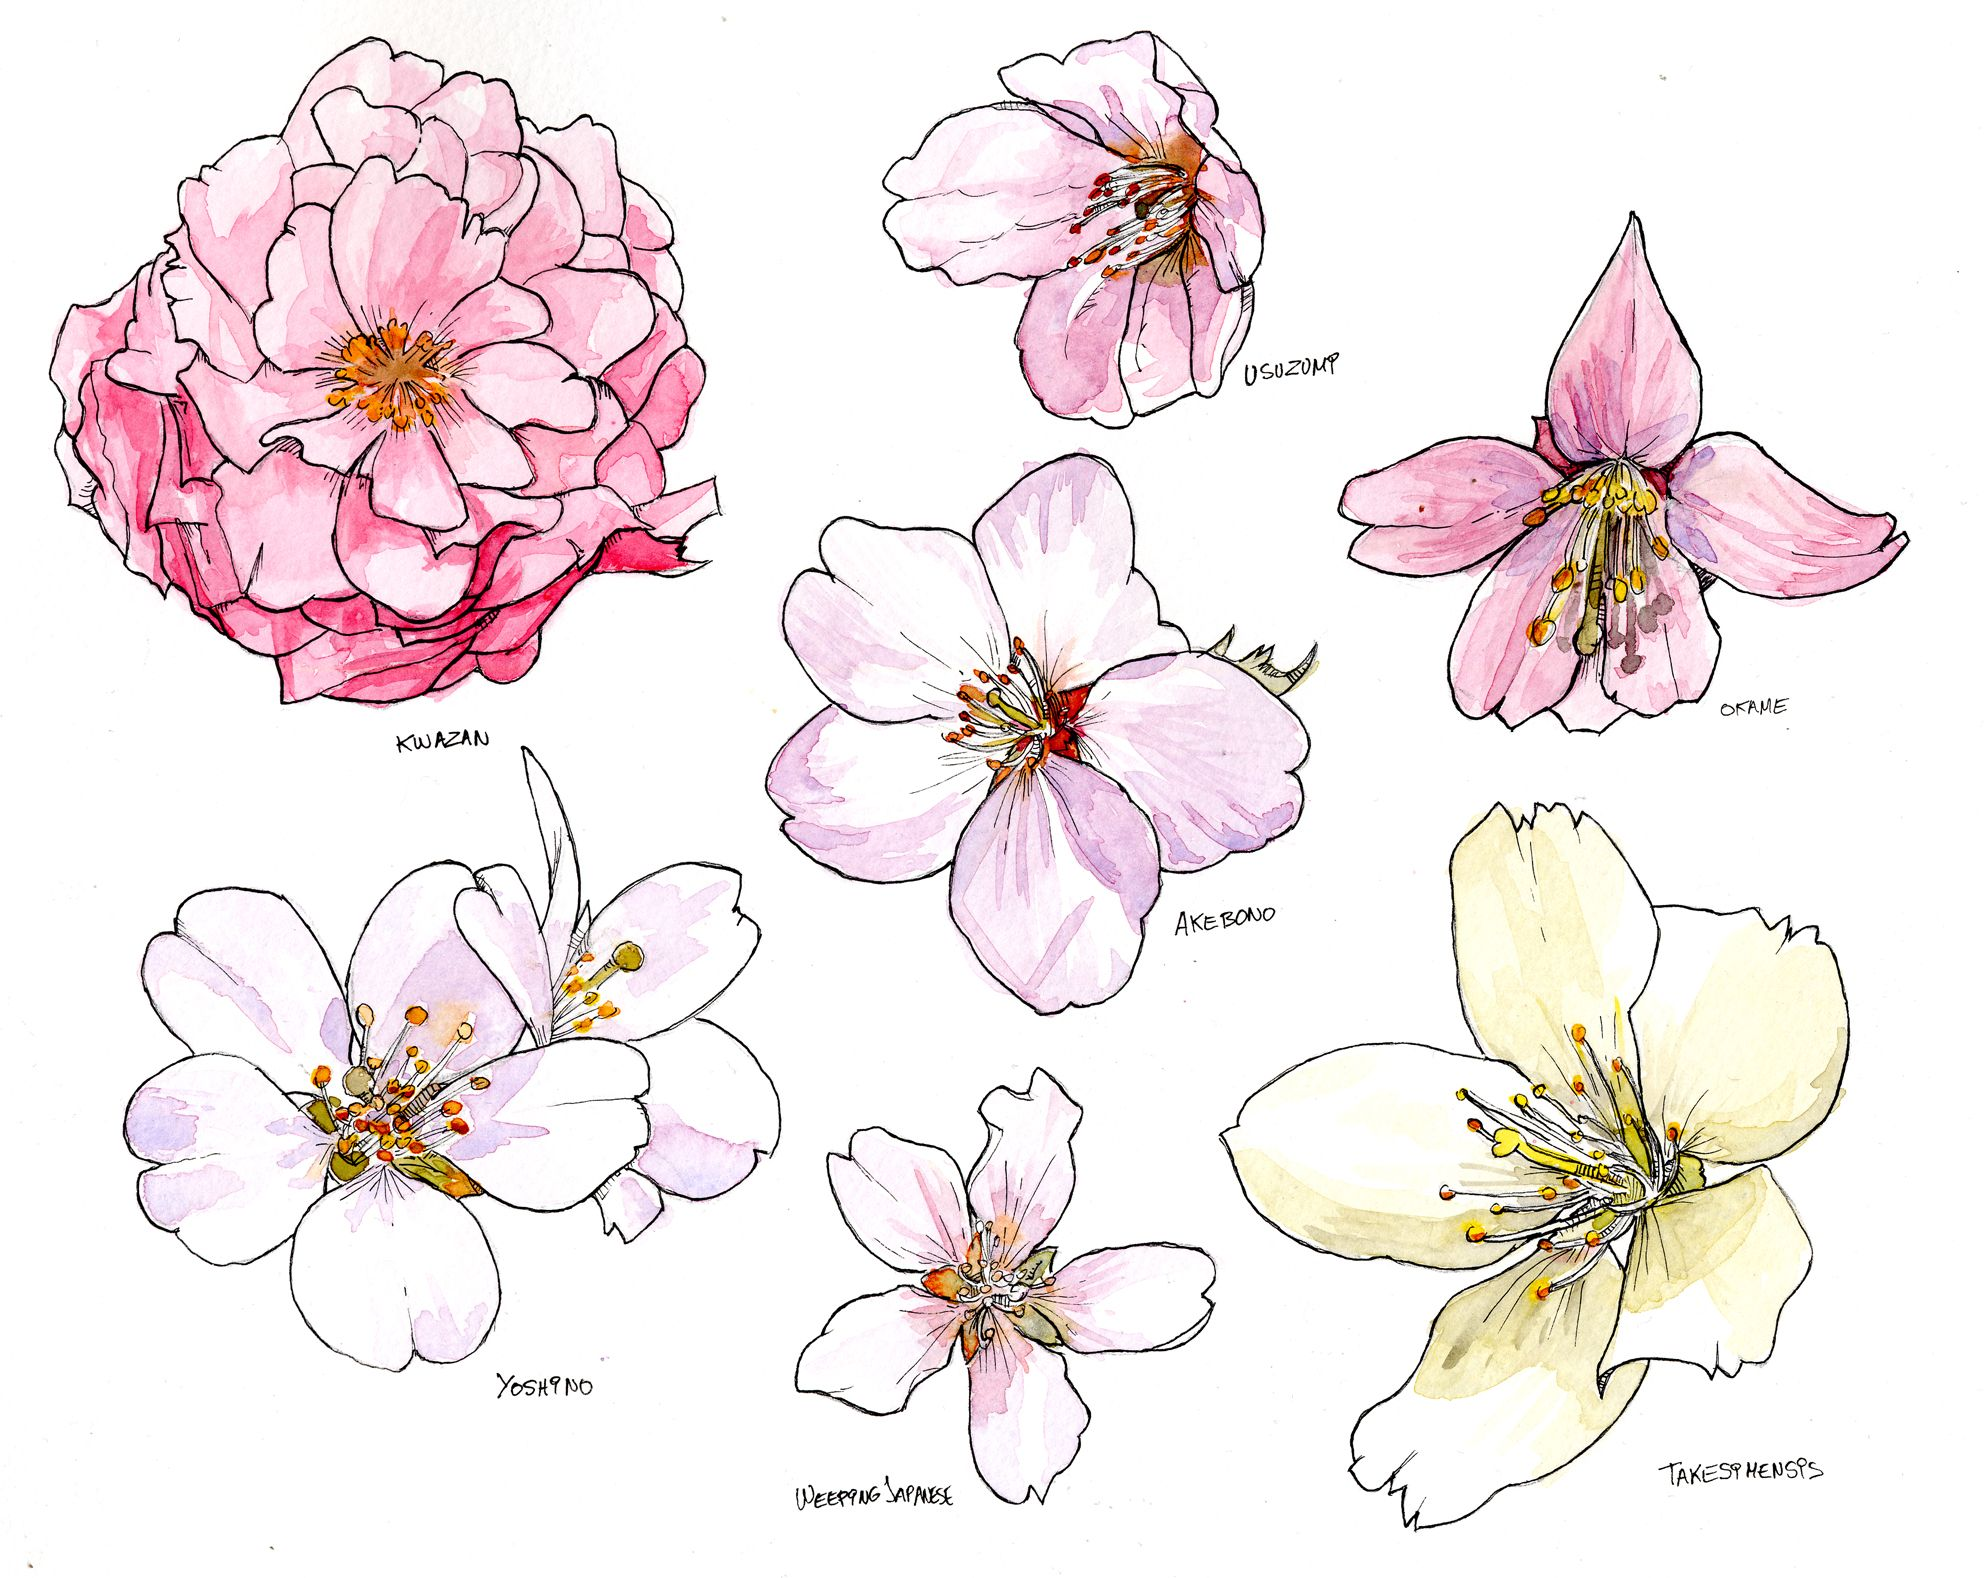 Cherry Blossom species | Cherry blossoms, Cherries and ...